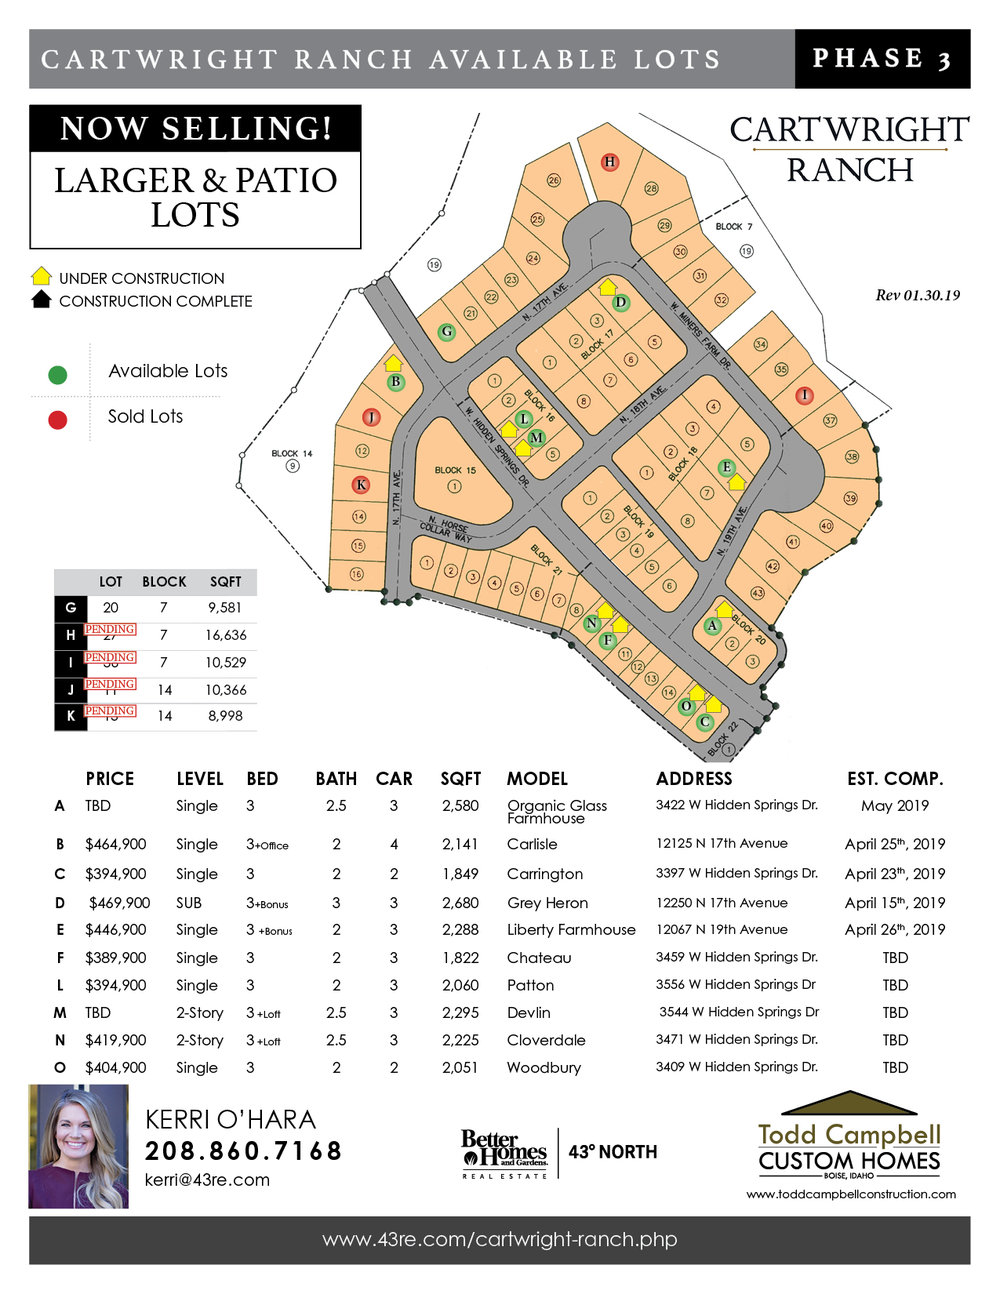 Traditional size, some with views and no back neighbors. Todd Campbell Custom Homes still lets you or your buyers PICK THEIR OWN SELECTIONS! CUSTOM builds as well!